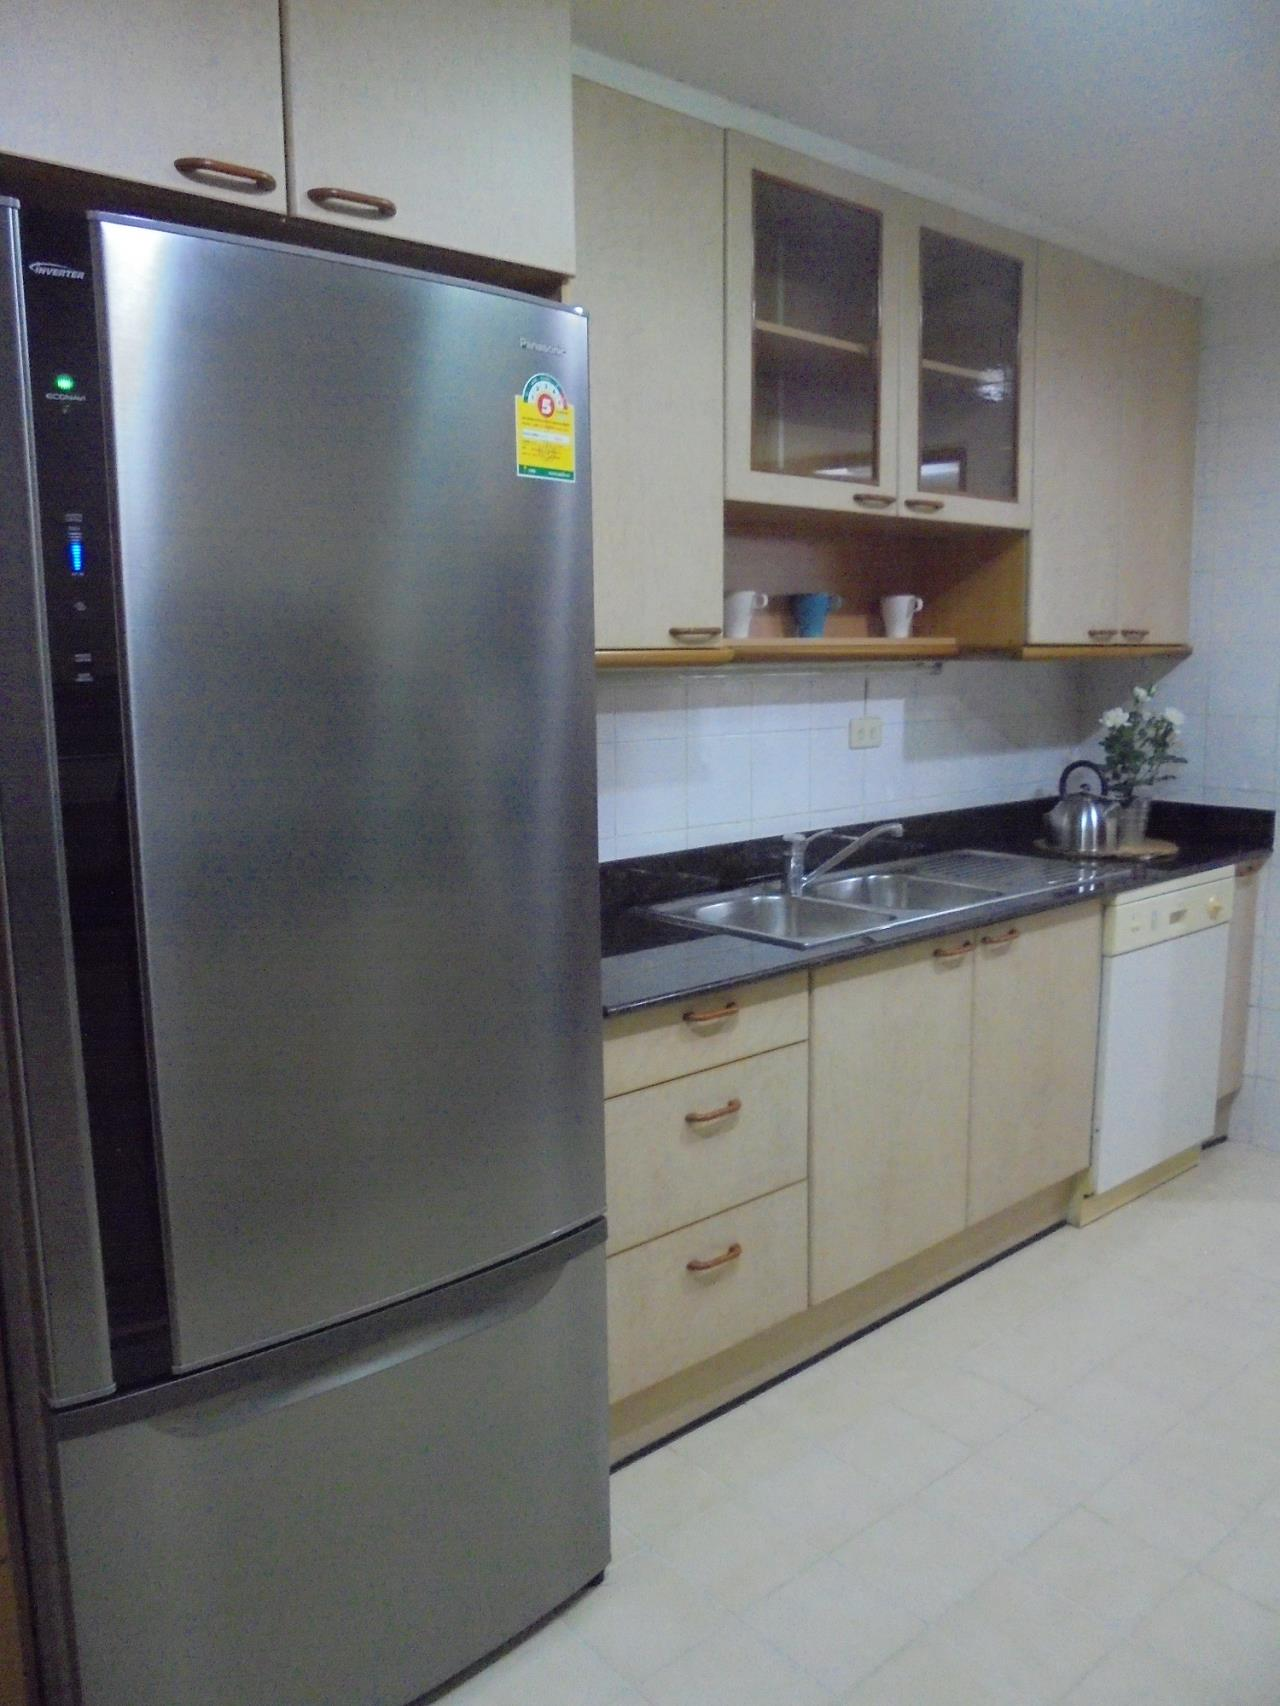 RE/MAX CondoDee Agency's Penthouse for Rent in Asoke - Quite & Central Location 7